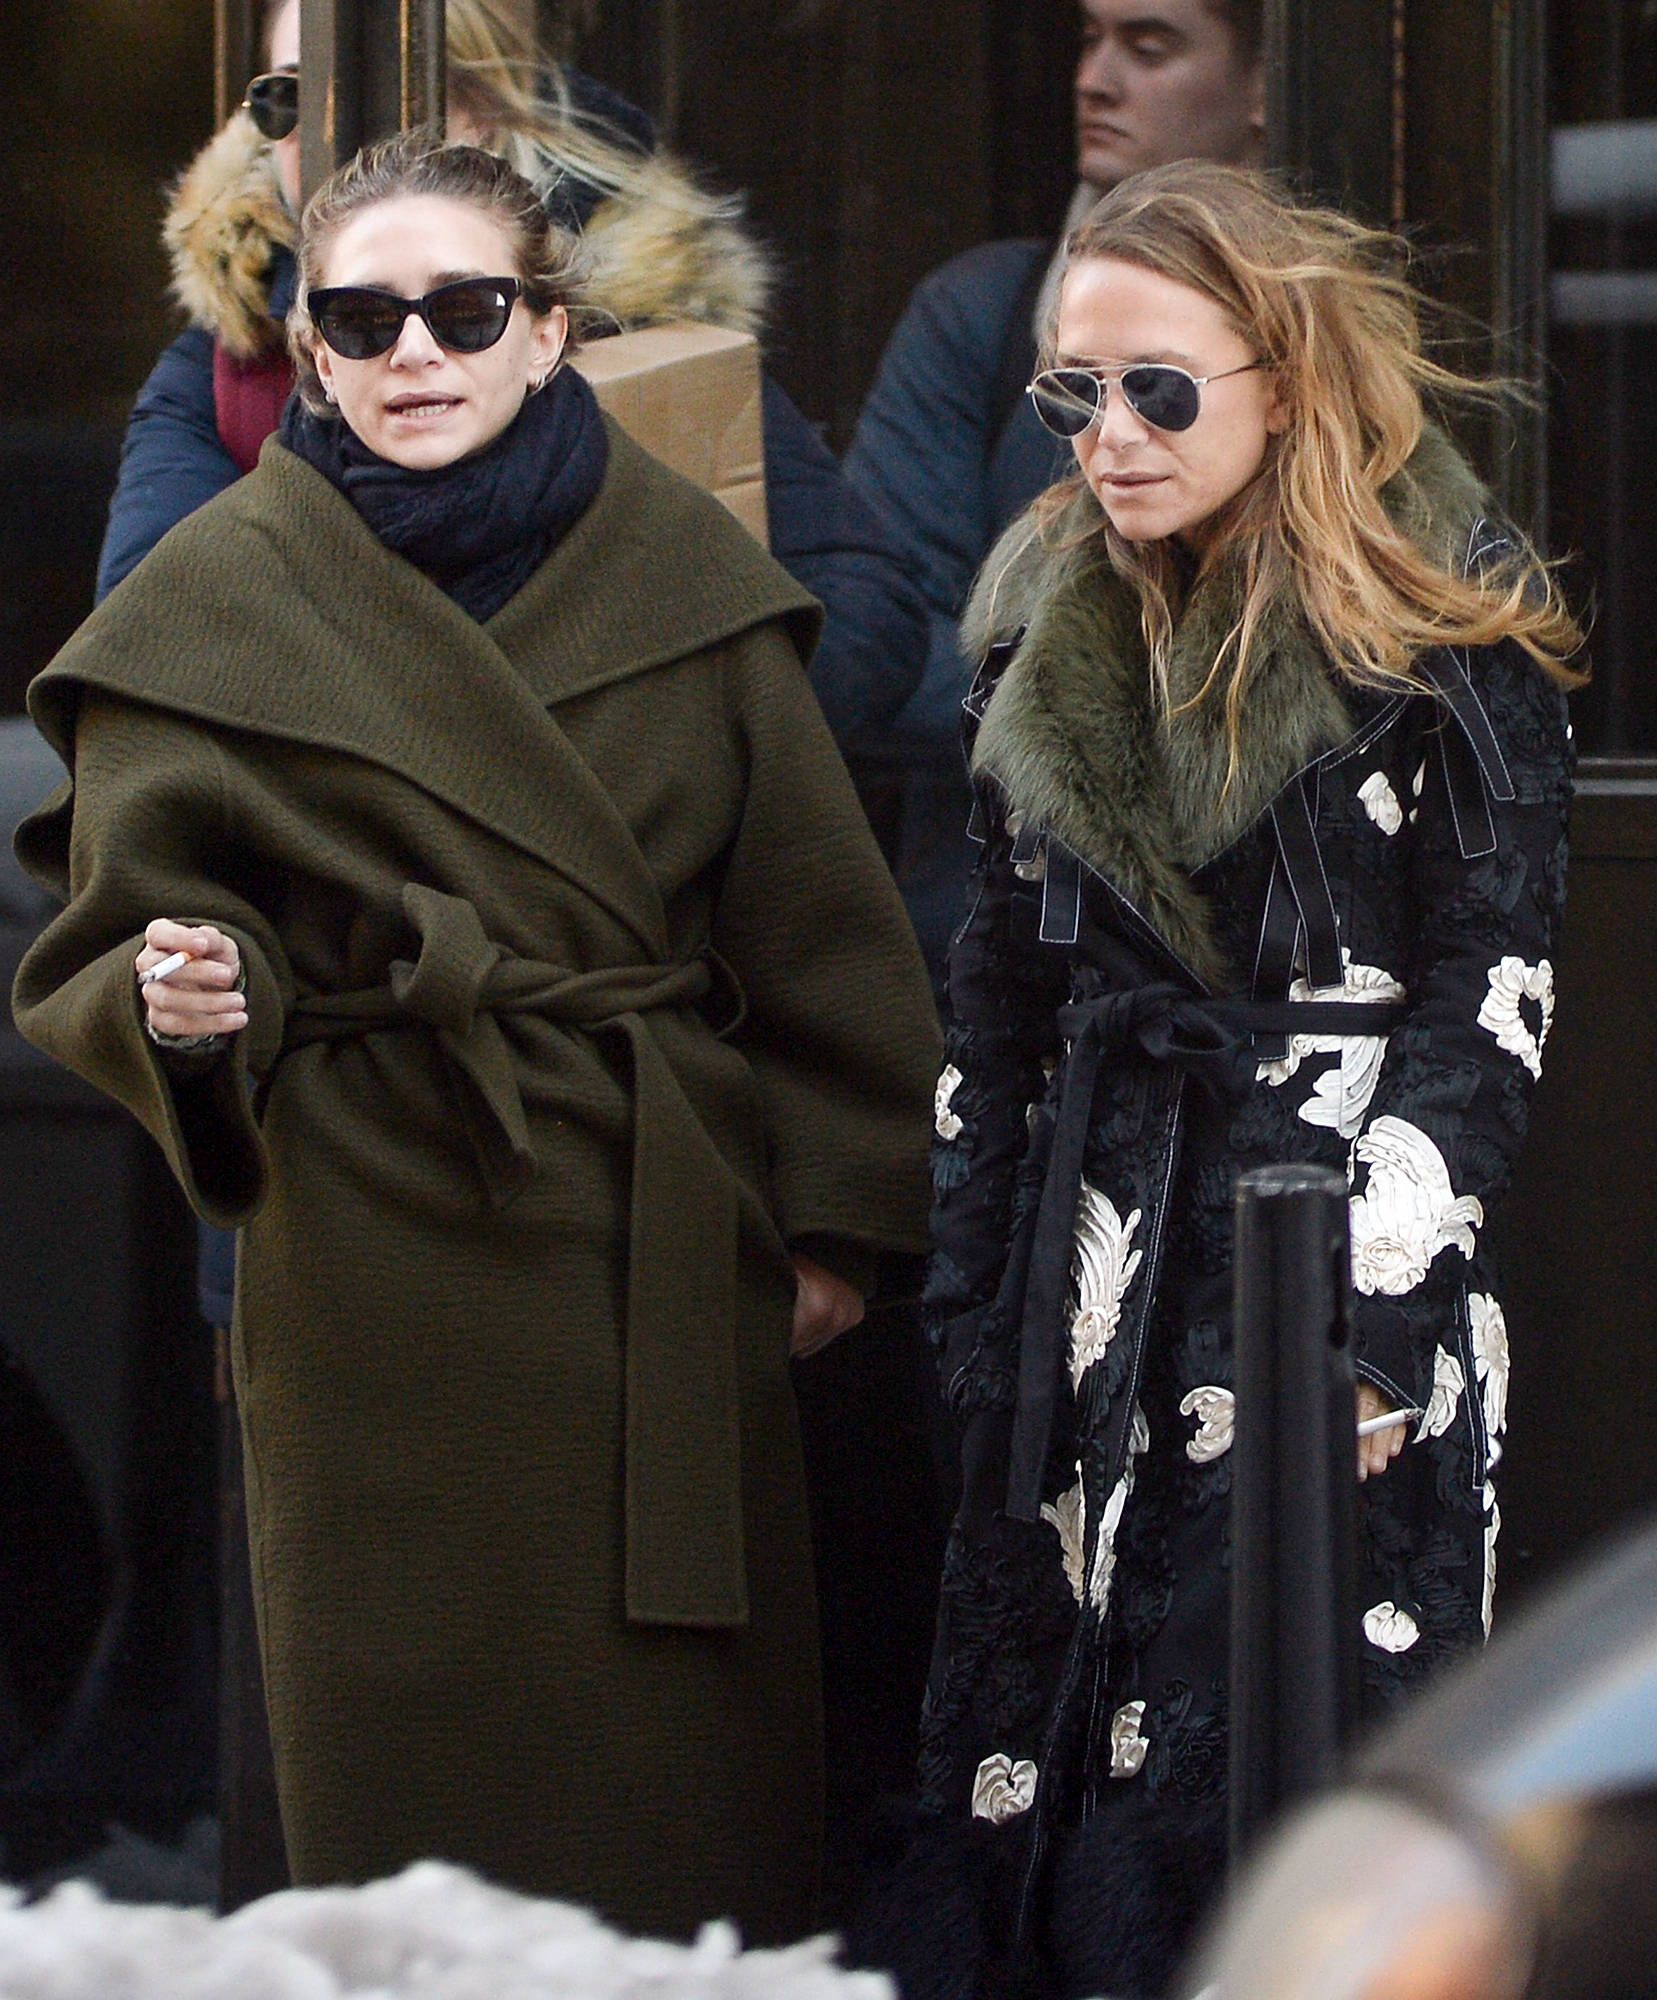 EXCLUSIVE: Mary-Kate Olsen and her Sister Ashley take a break to smoke a Cigarrette in the City